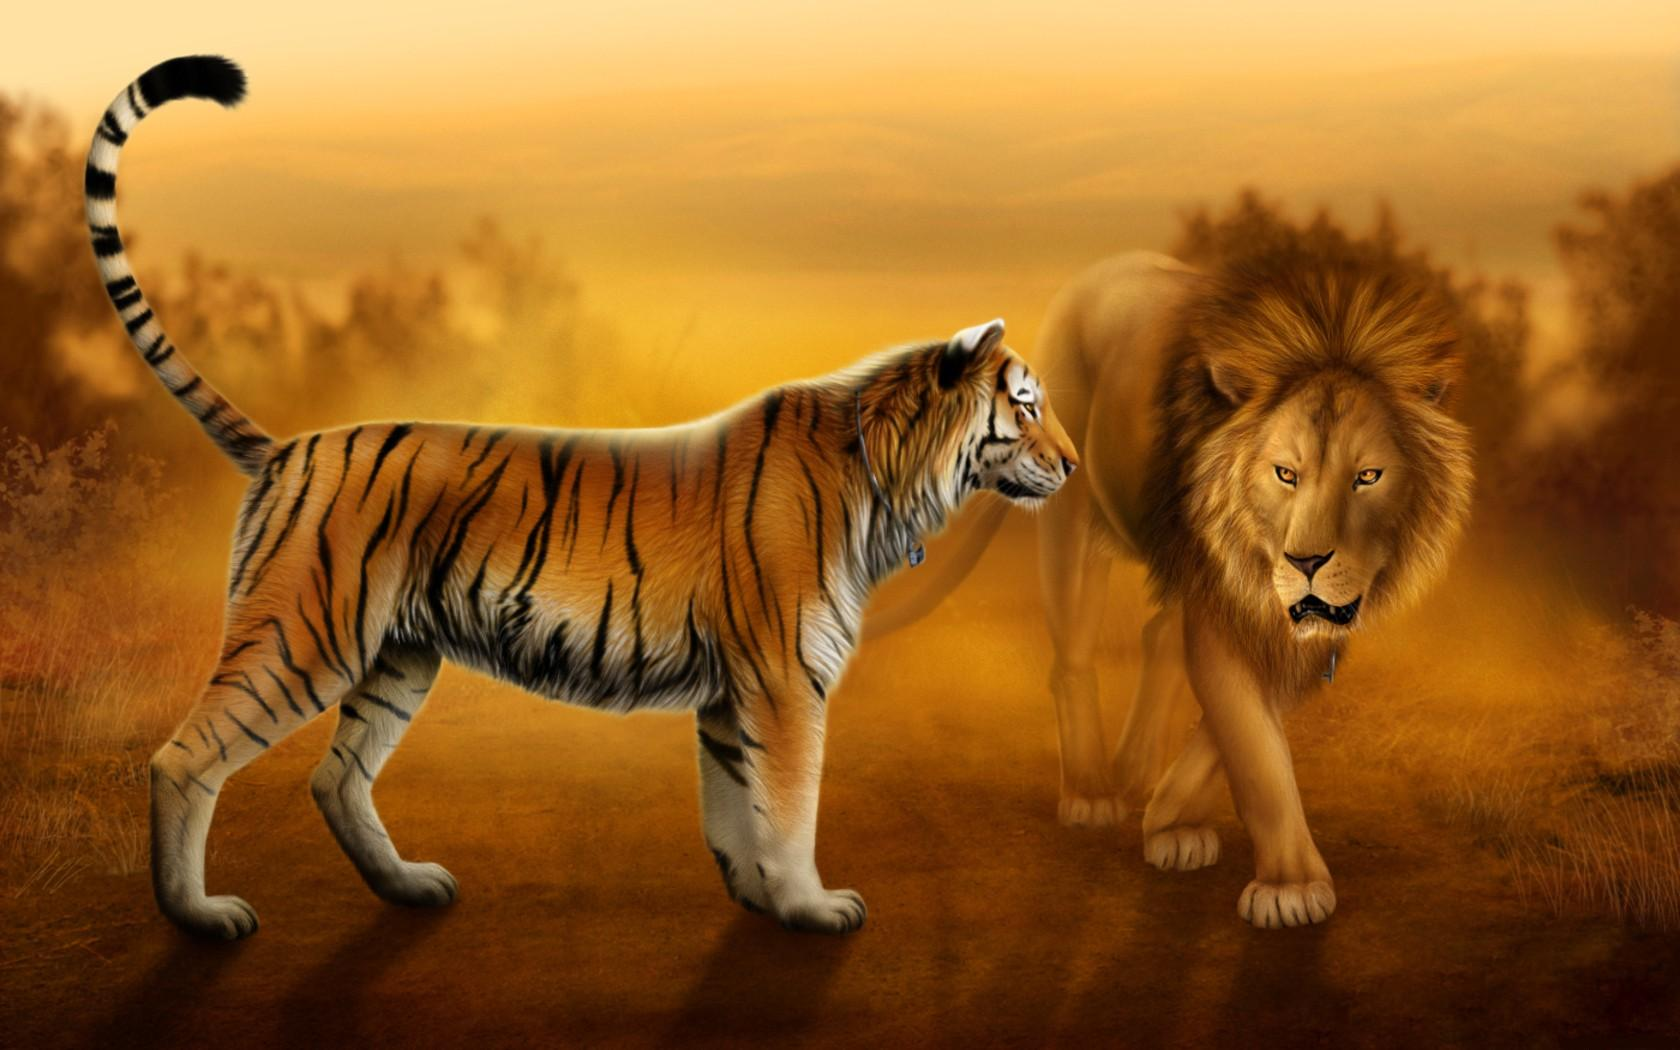 Lions And Tigers Wallpapers 100 Quality Hd Images